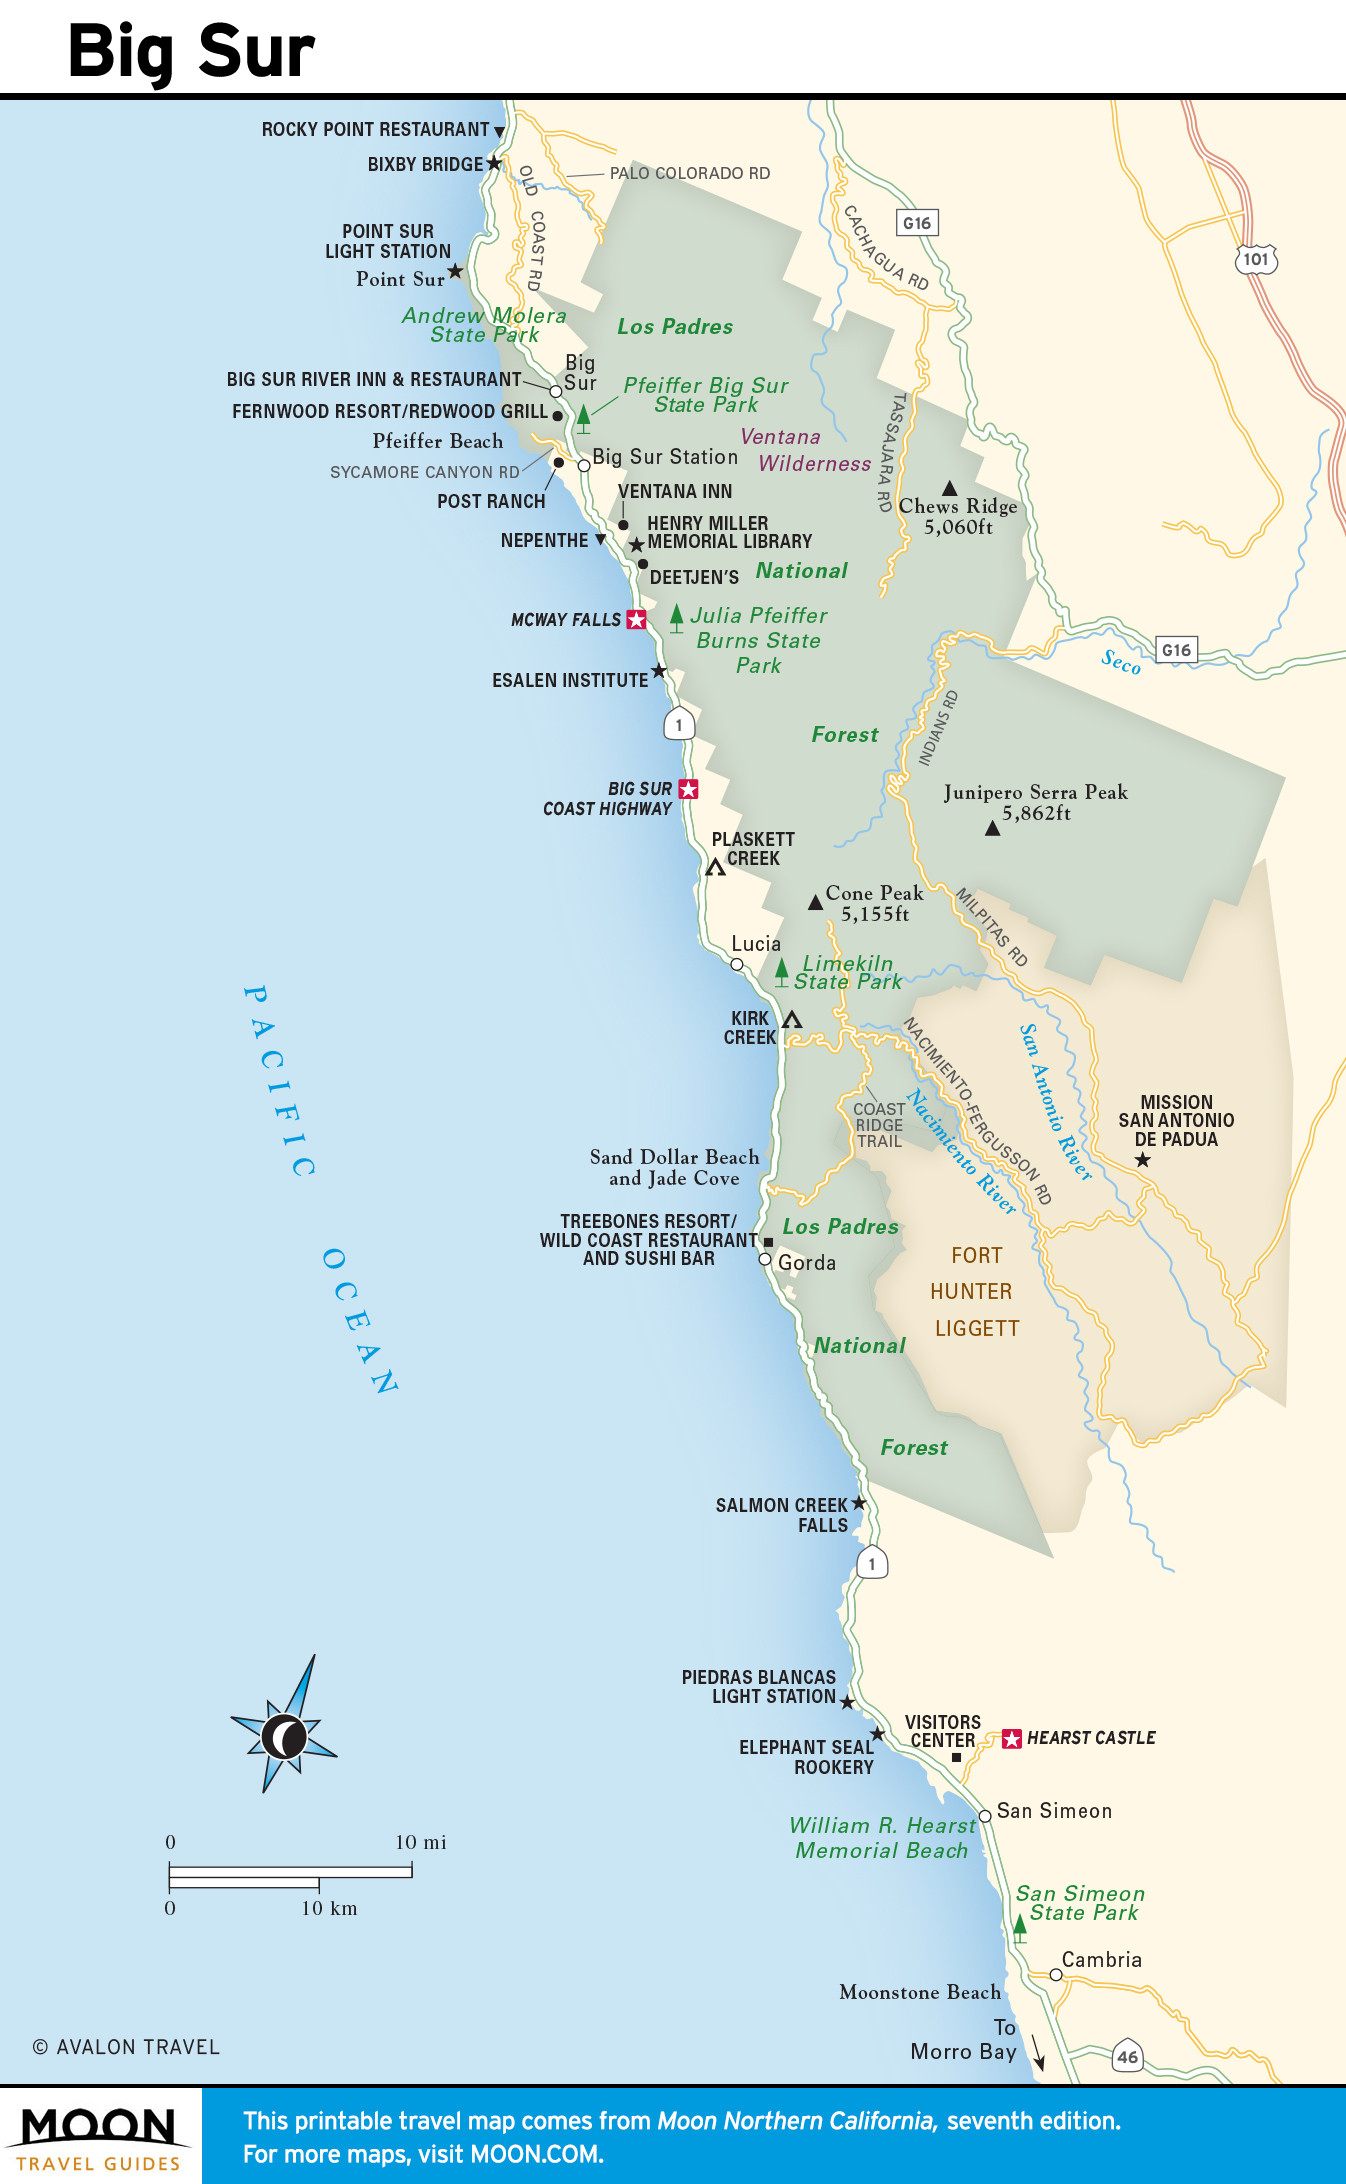 California Beach Towns Map - Klipy - Southern California Beach Towns Map